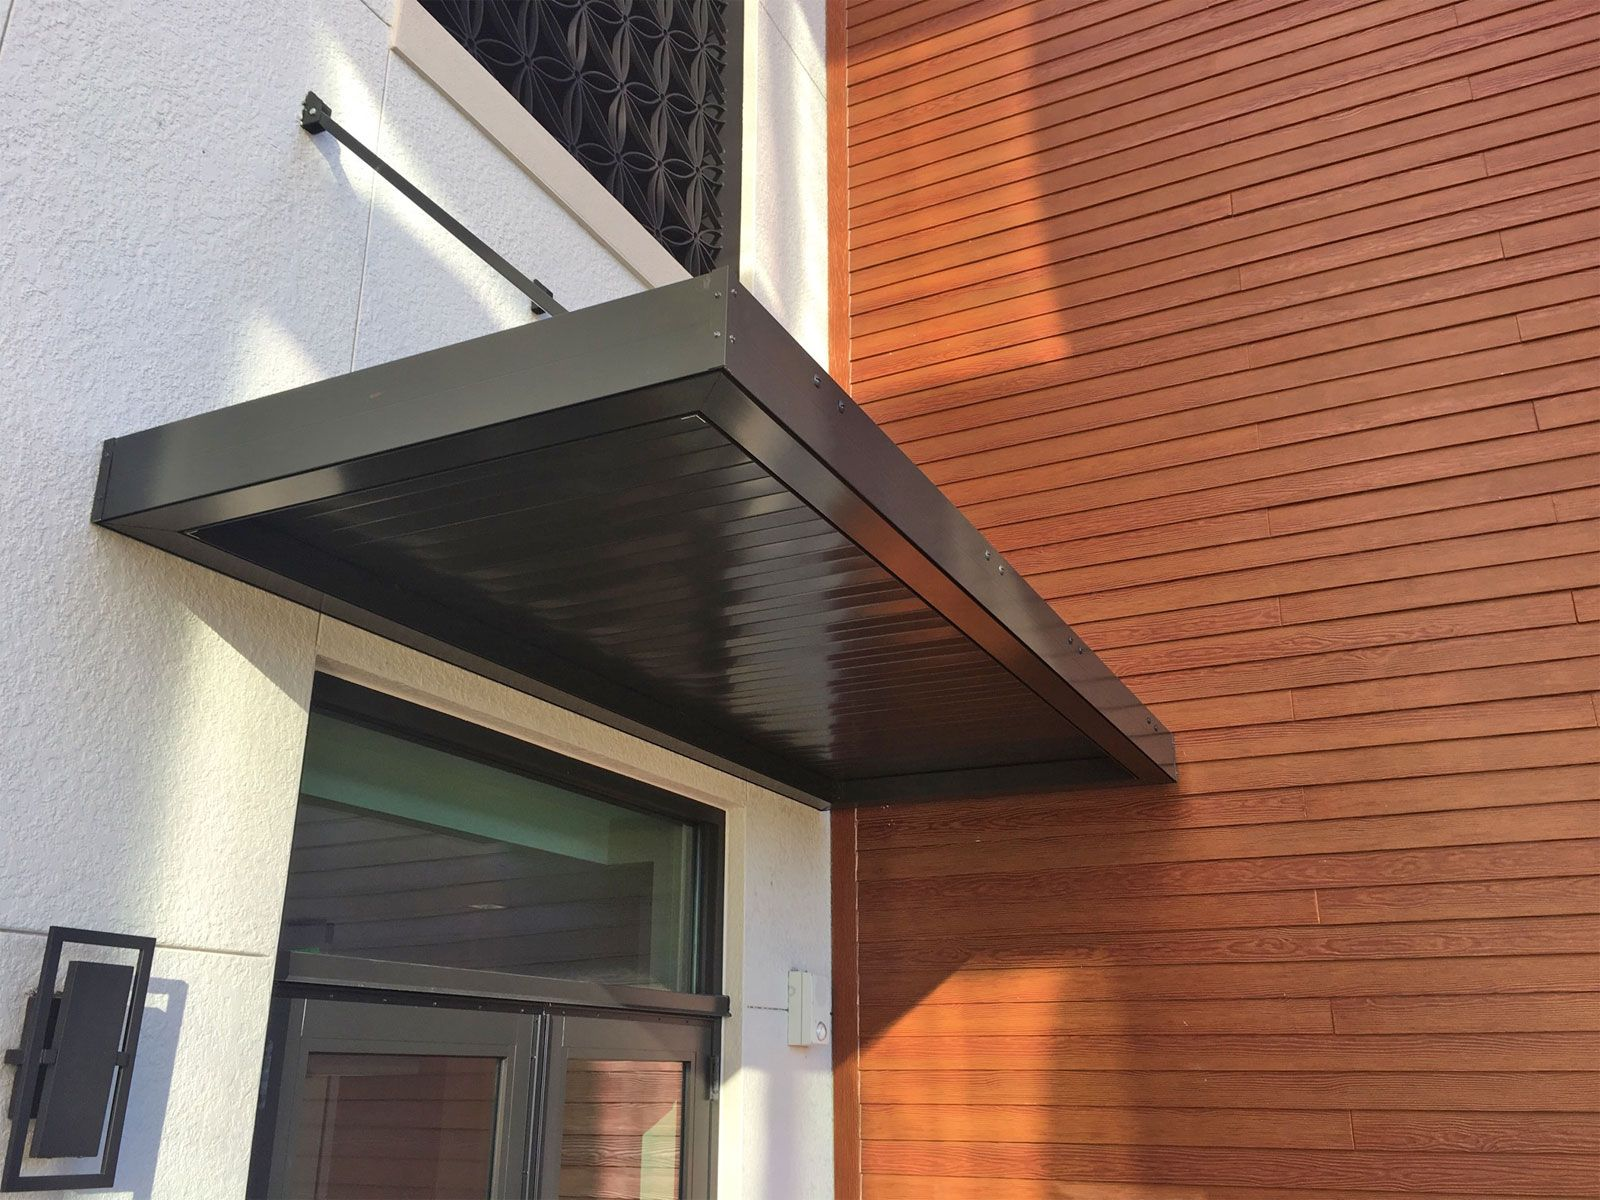 Imperial Marquee Awning With 8 Wide Flat Panels Metal Awning Awning Aluminum Awnings